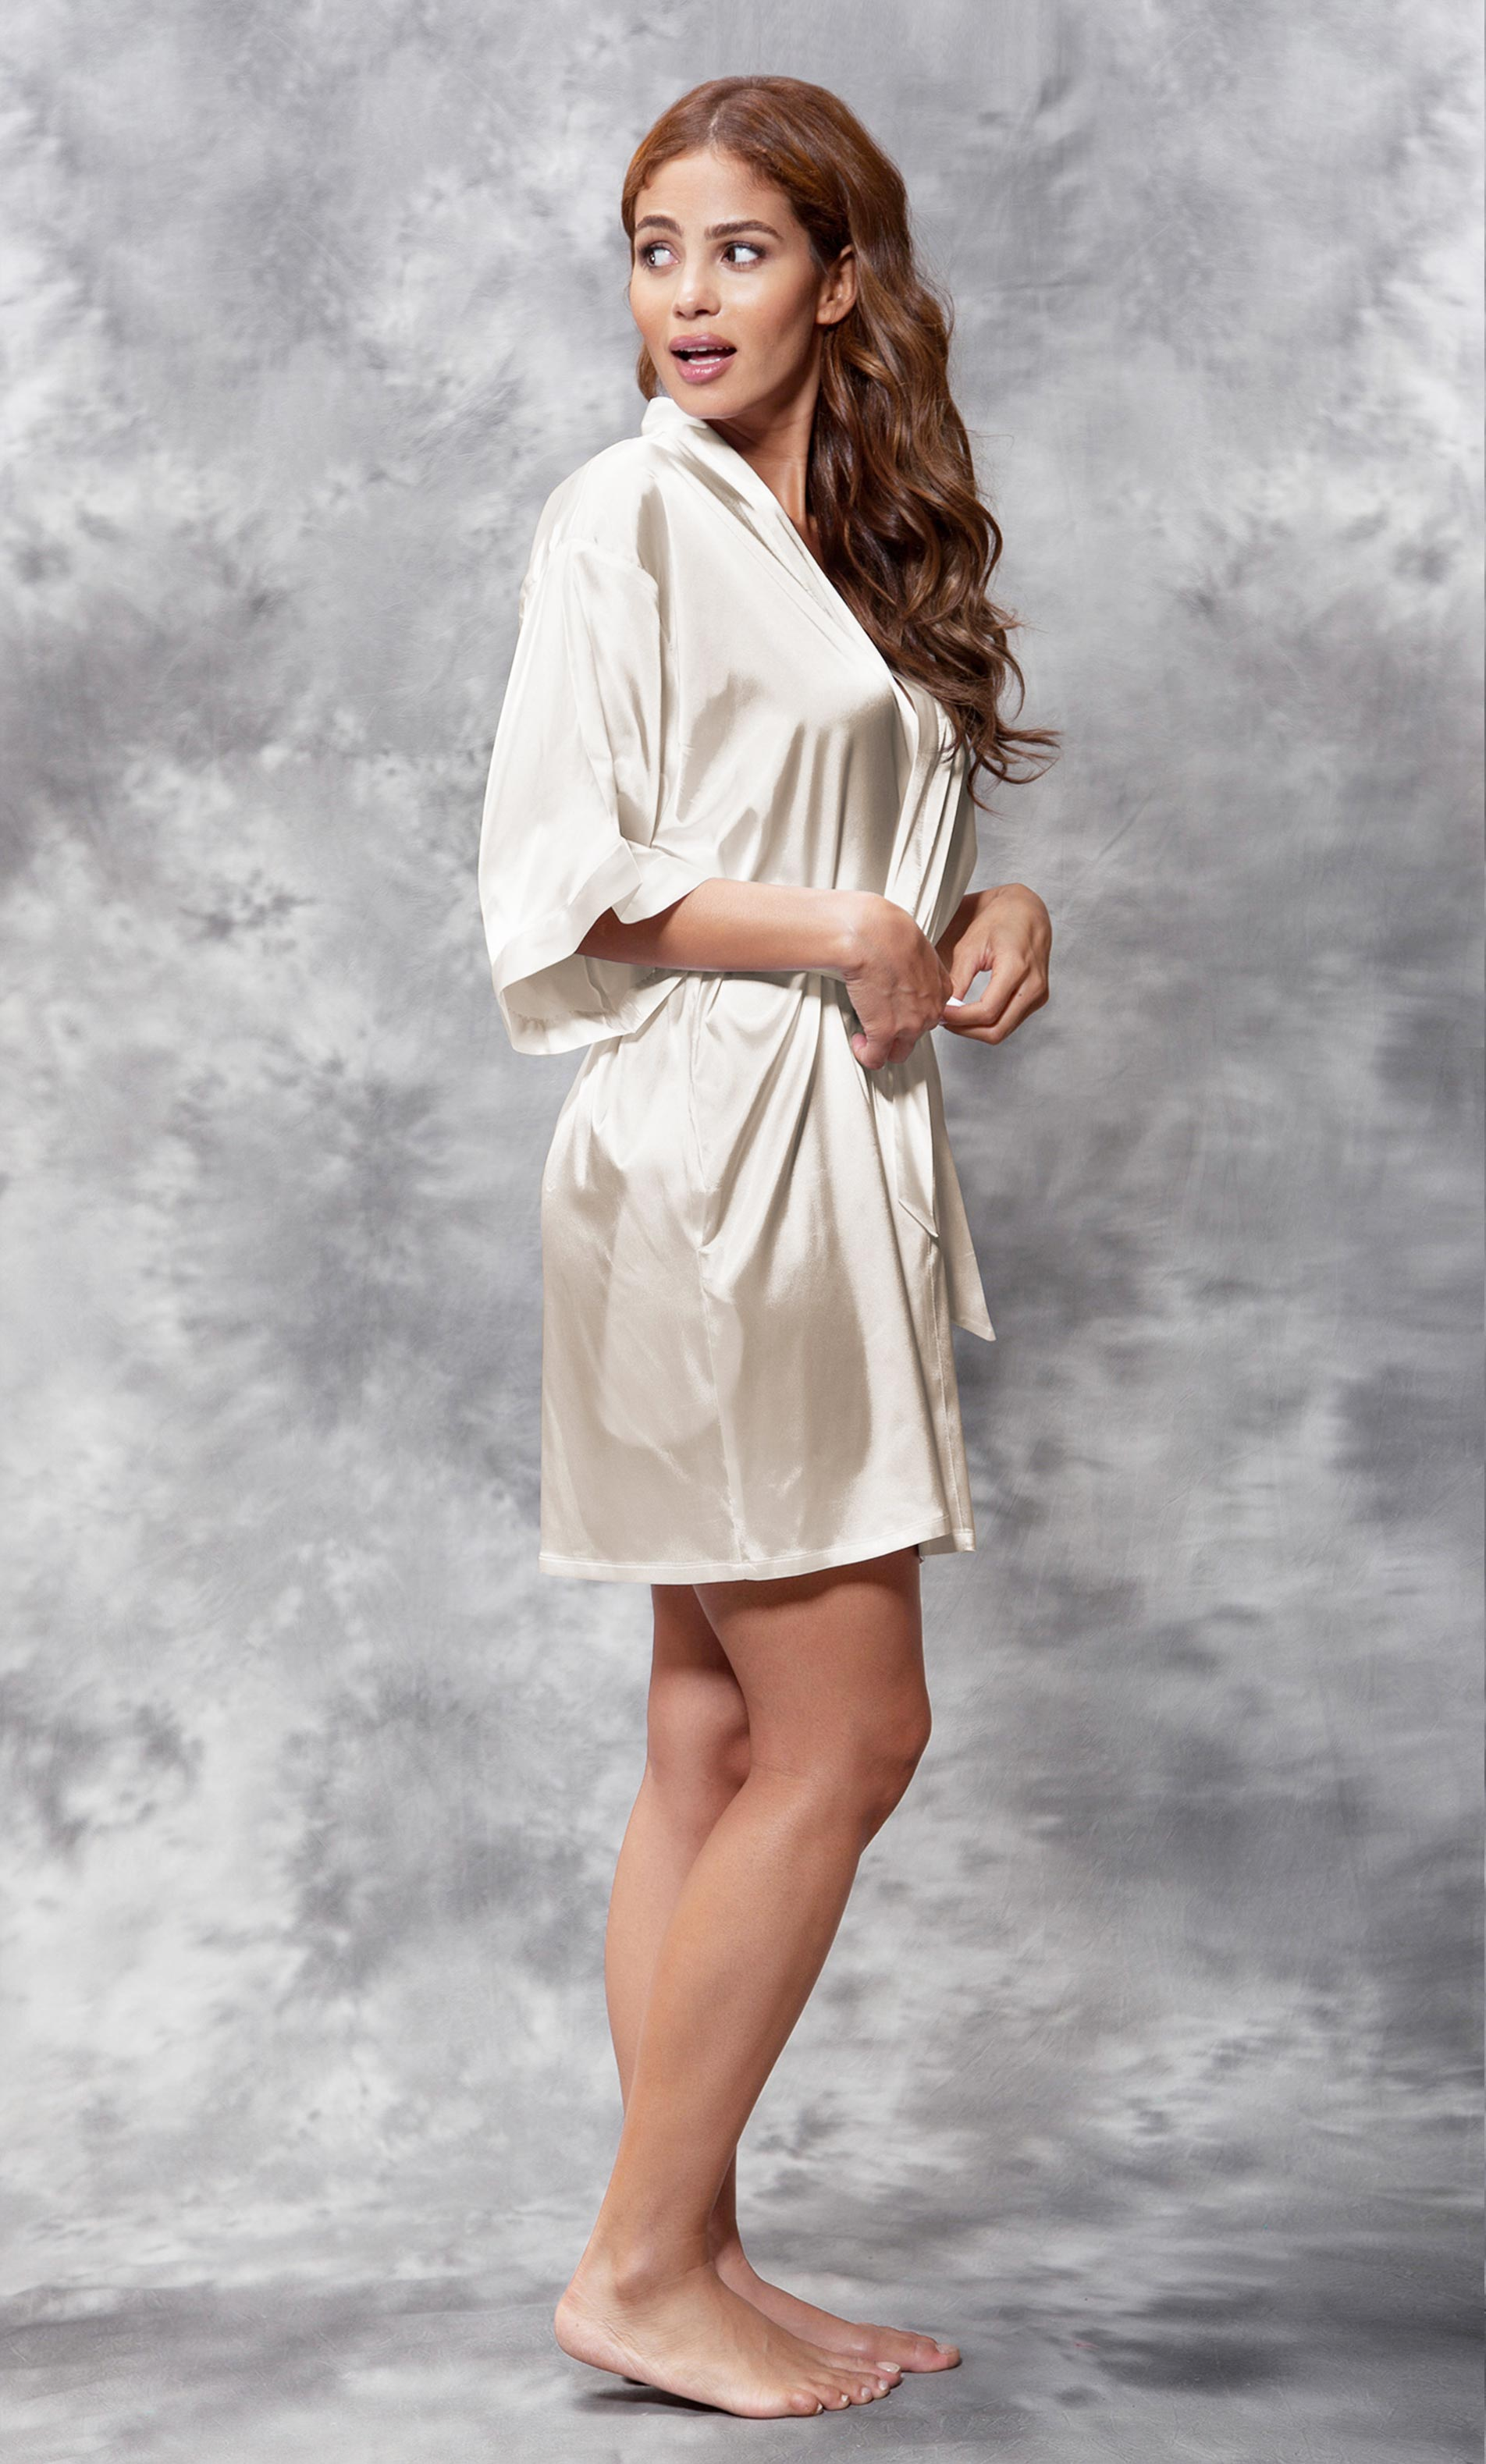 Mother of the Groom Clear Rhinestone Satin Kimono Champagne Short Robe-Robemart.com